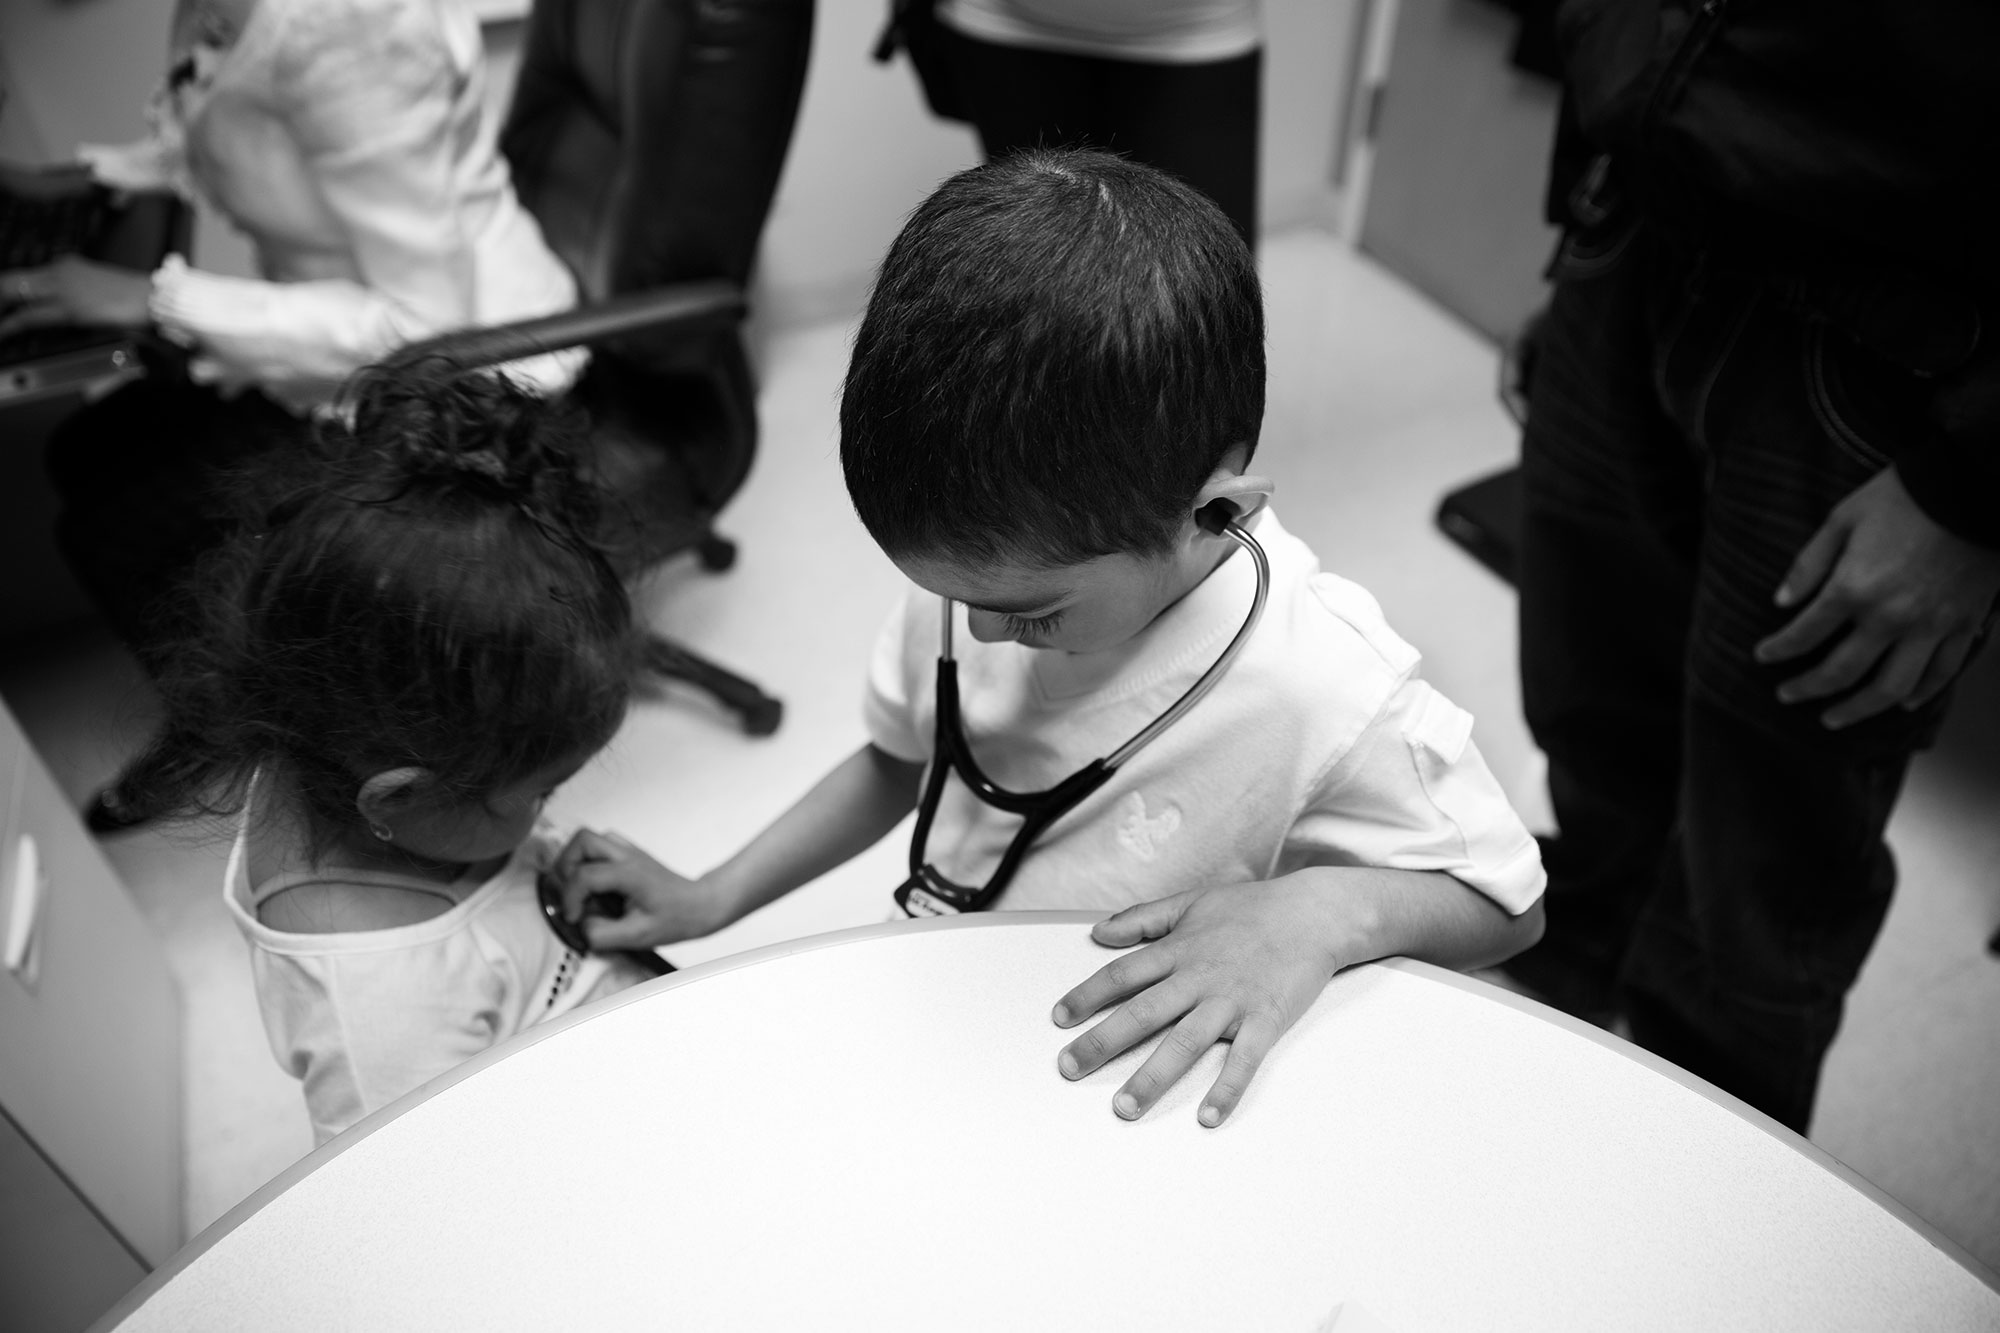 Kelvin uses a stethoscope on his sister.